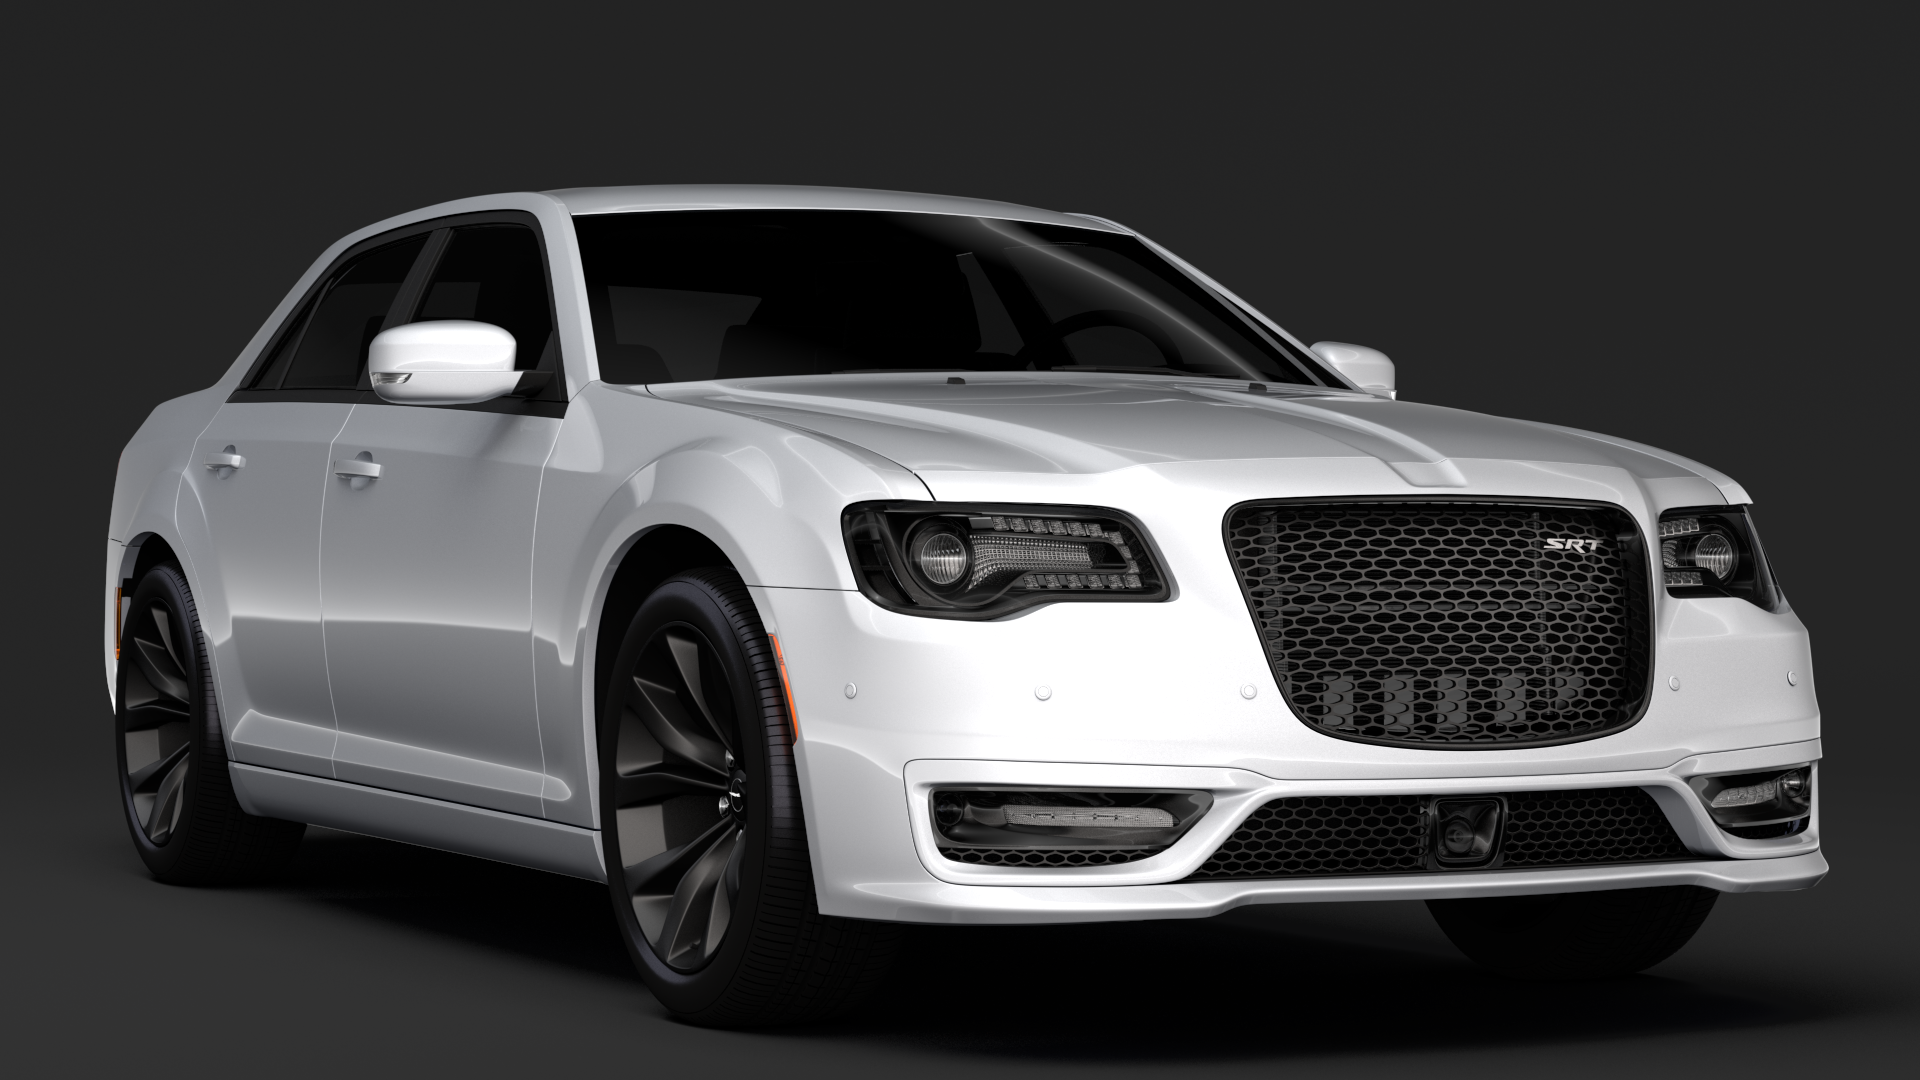 chrysler 300 srt lx2 2018 3d model 3ds max fbx c4d lwo ma mb hrc xsi obj 286092